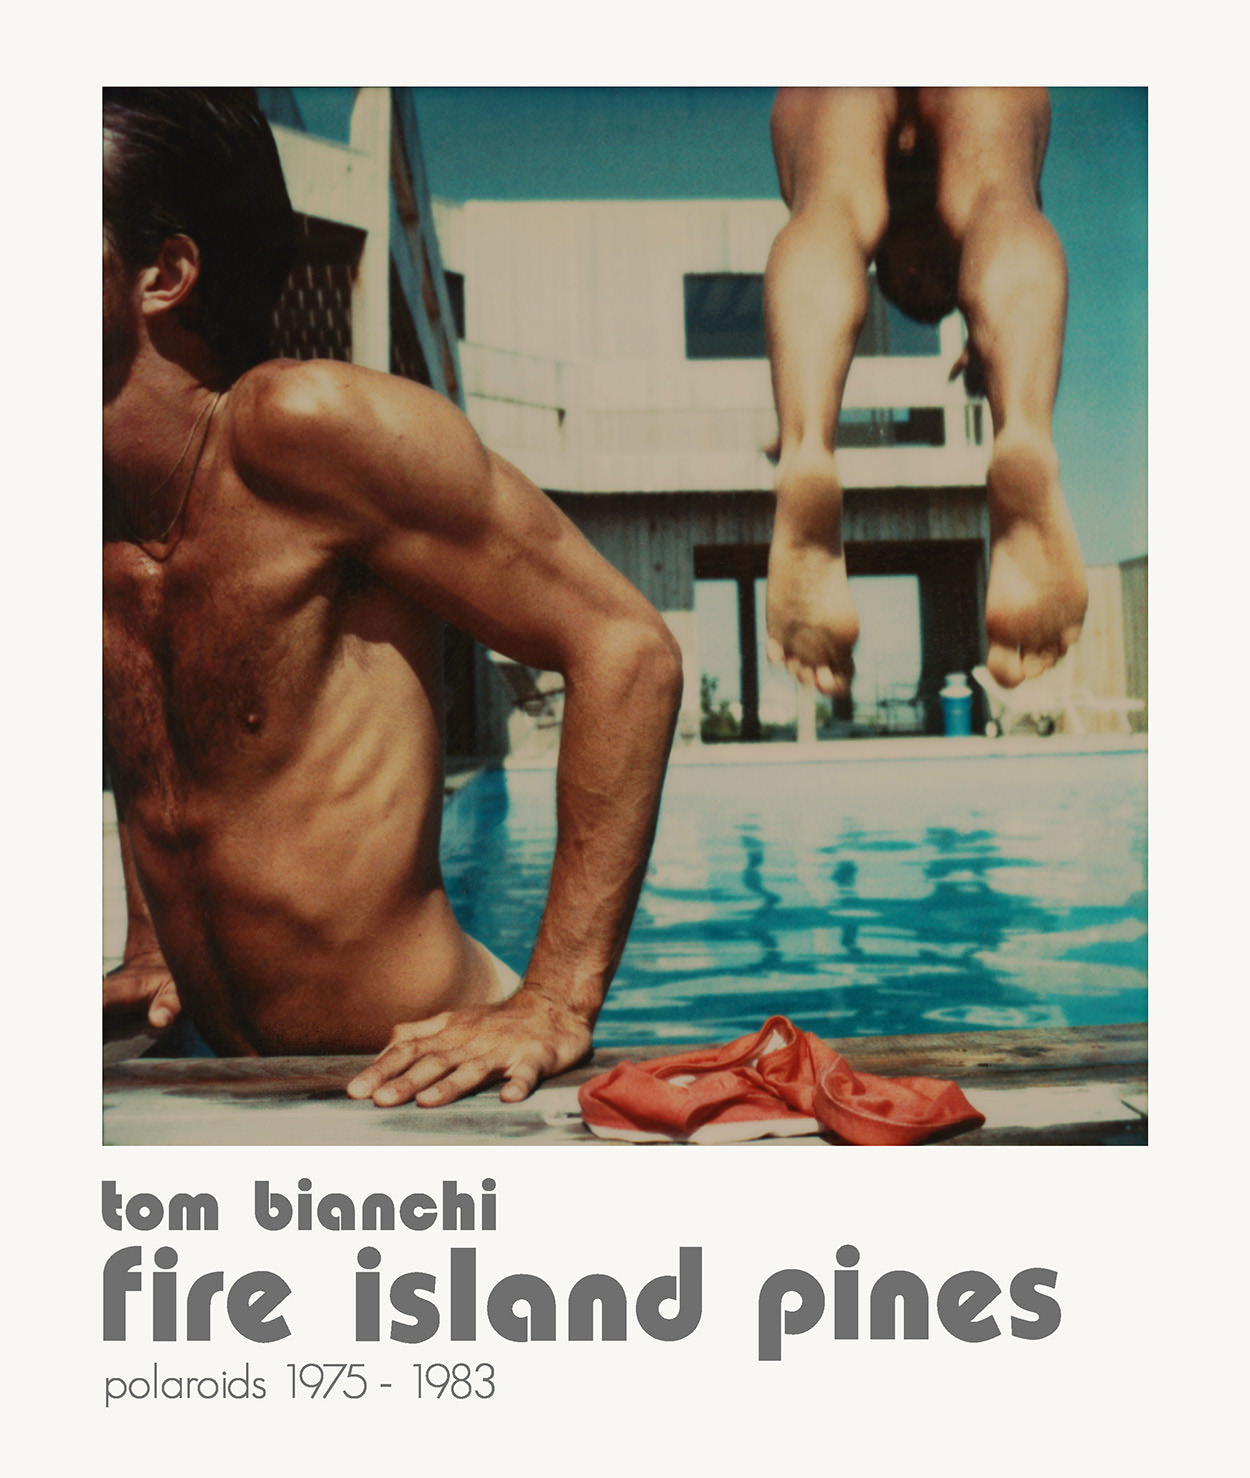 Tom Bianchi: Fire Island Pines, Polaroids 1975-1983 Hardcover – May 31, 2013